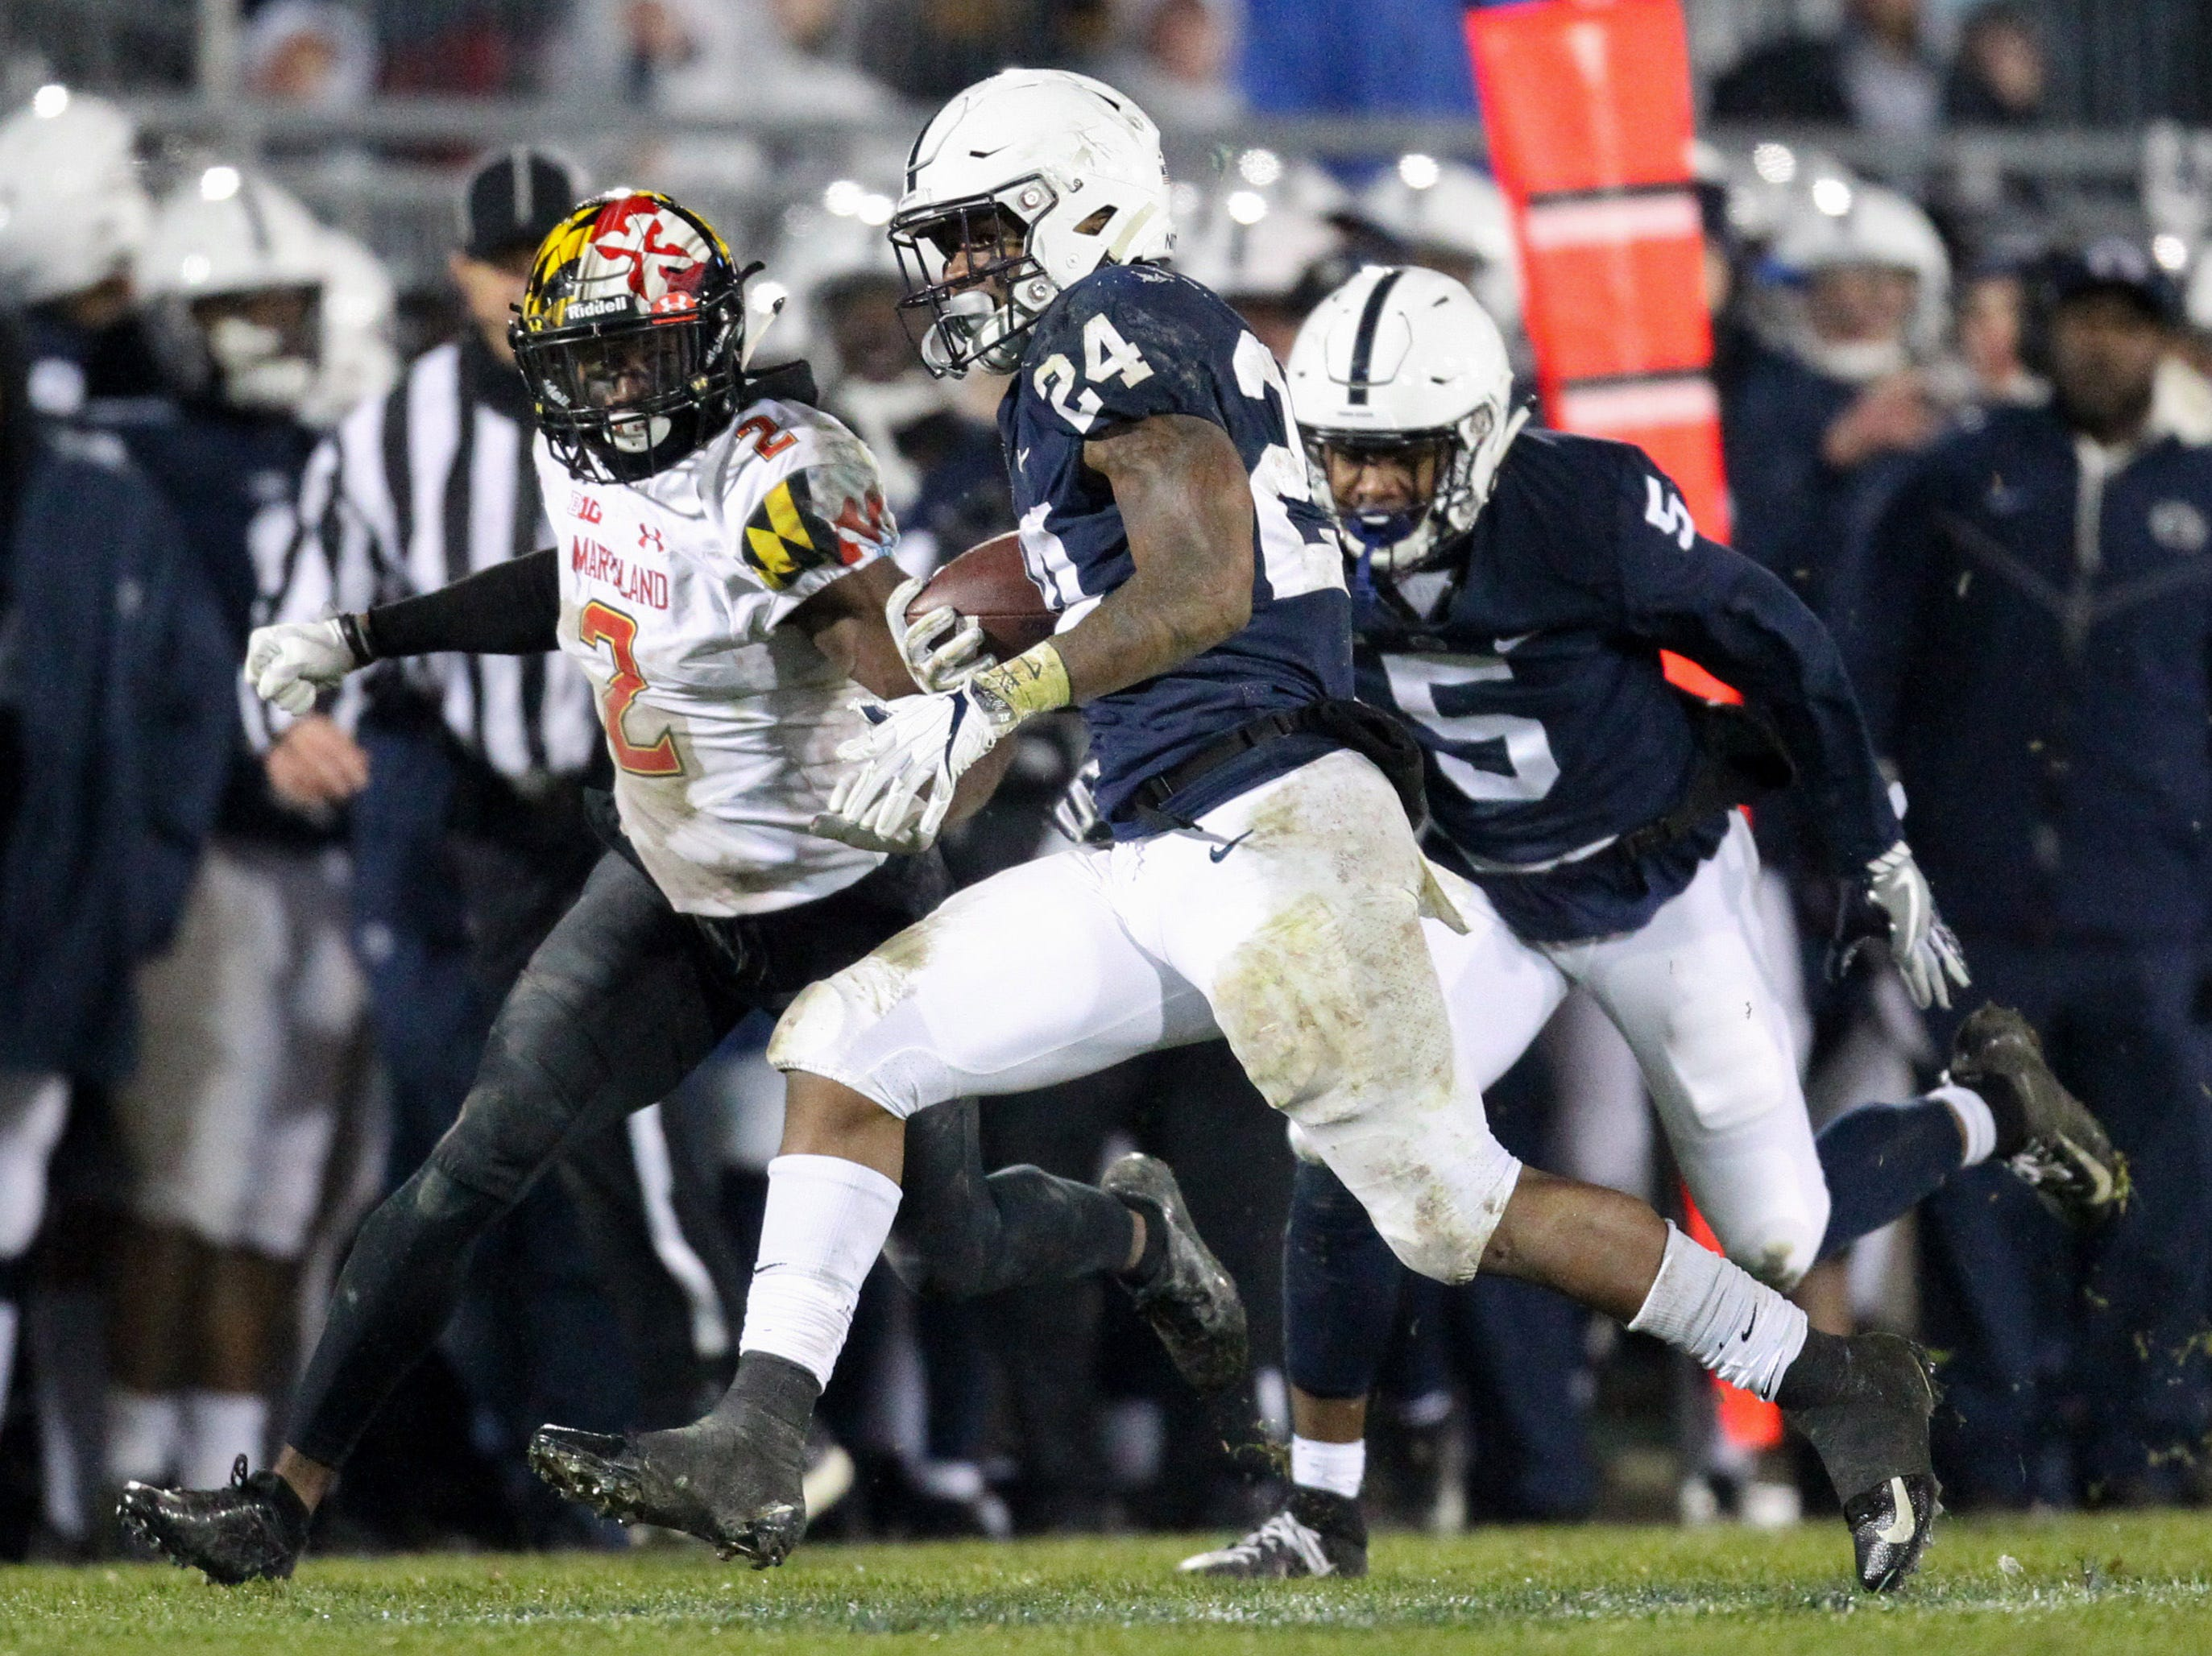 Nov 24, 2018; University Park, PA, USA; Penn State Nittany Lions running back Miles Sanders (24) runs with the ball during the third quarter against the Maryland Terrapins at Beaver Stadium. Penn State defeated Maryland 38-3. Mandatory Credit: Matthew O'Haren-USA TODAY Sports